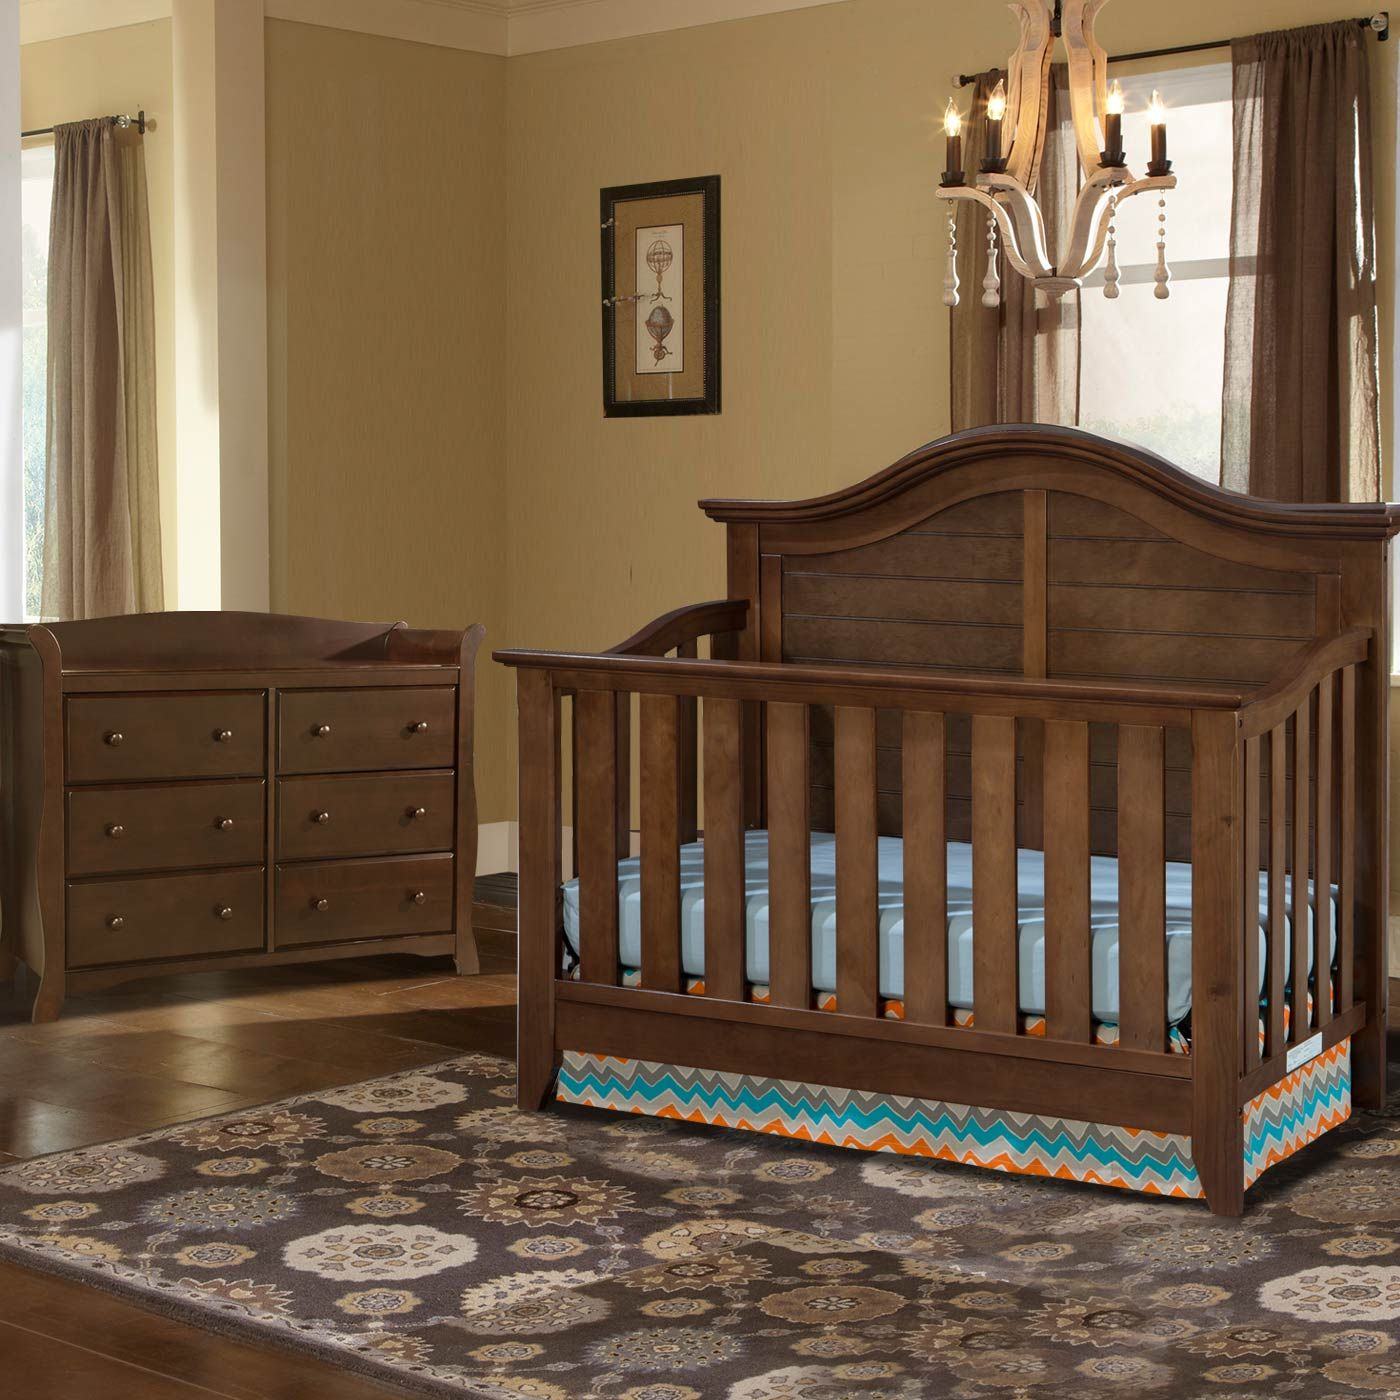 Thomasville 2 Piece Nursery Set Southern Dunes Lifestyle Crib And Avalon 6 Drawer Dresser In Dove Brown